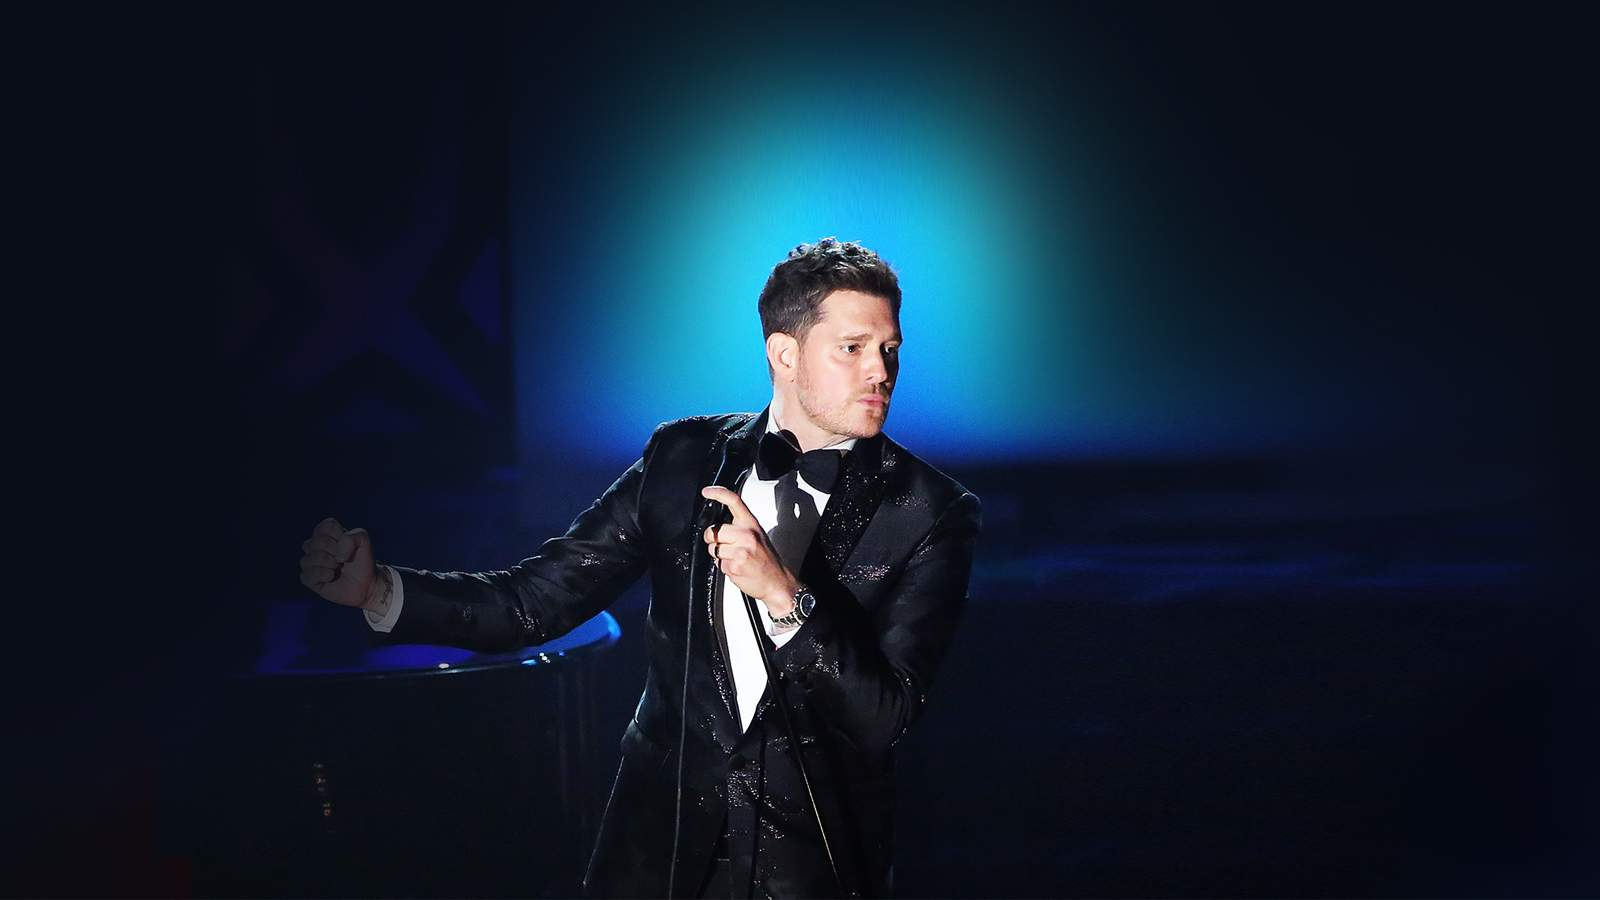 Michael Buble (Rescheduled from 5/3/2020)